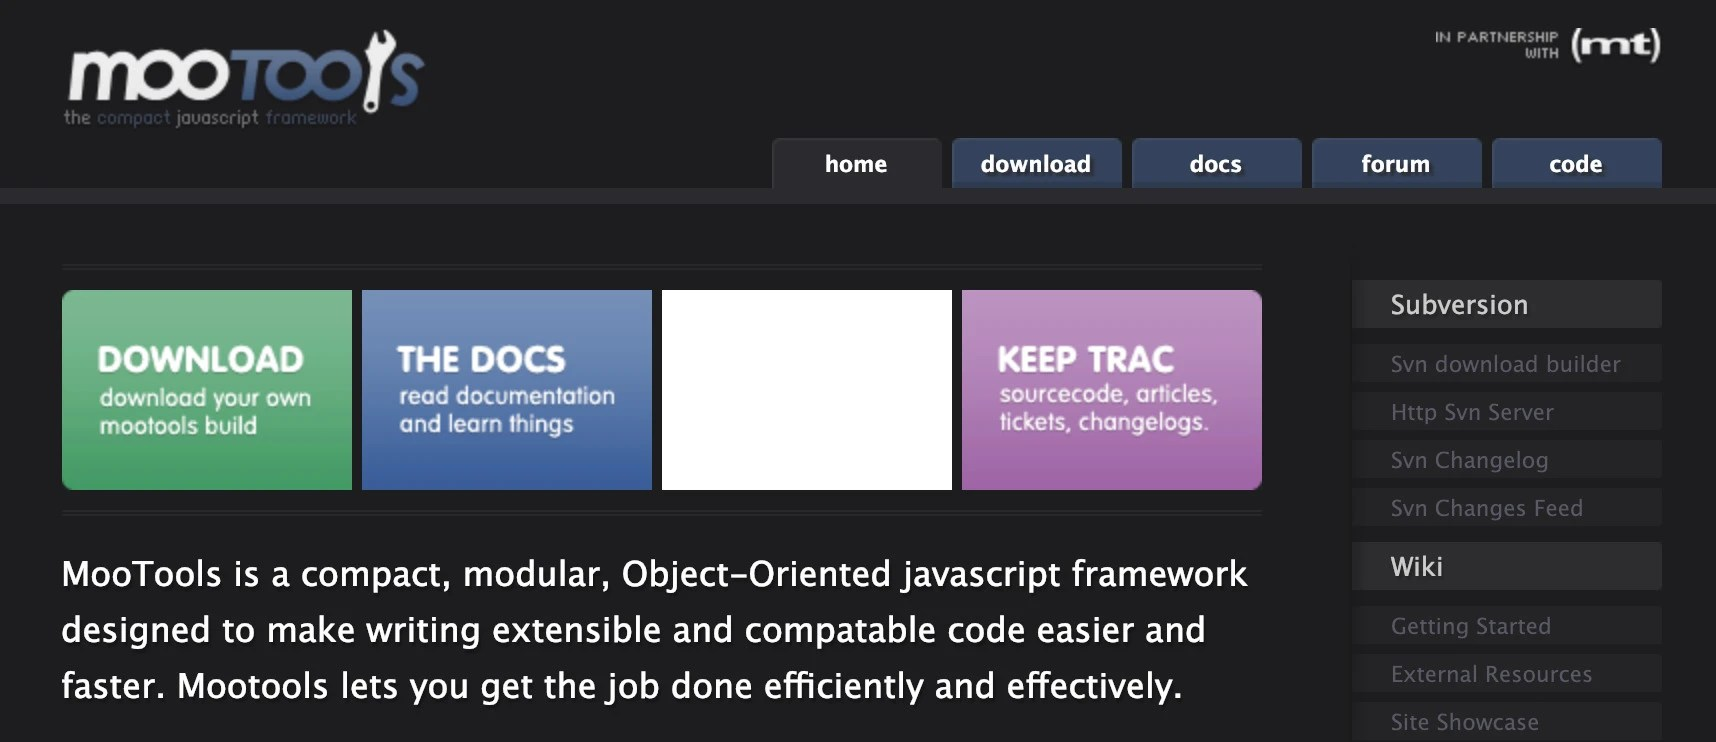 MooTools is a compact, modular, Object-oriented JavaScript framework designed to make writing extensible and compatible code easier and faster.